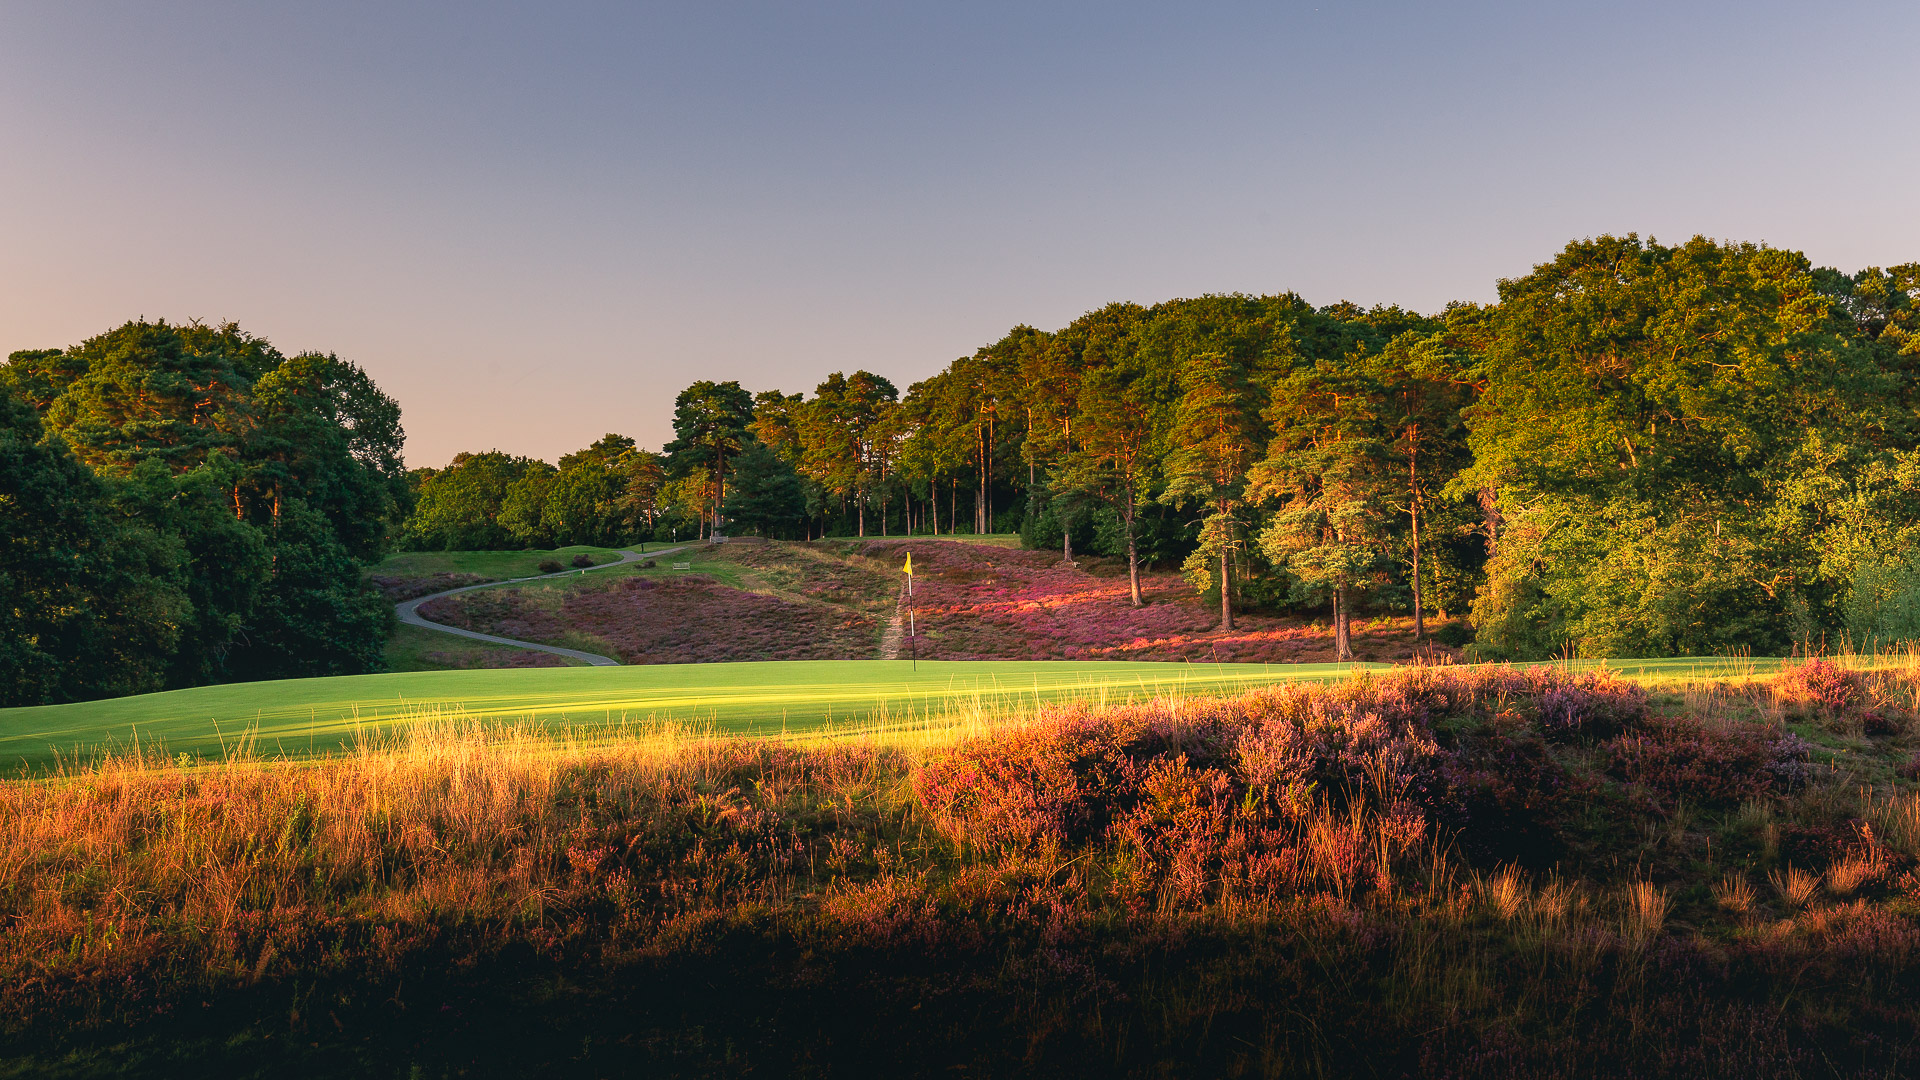 08th-Hole-St-Georges-Hill-Golf-Club-2471-Edit